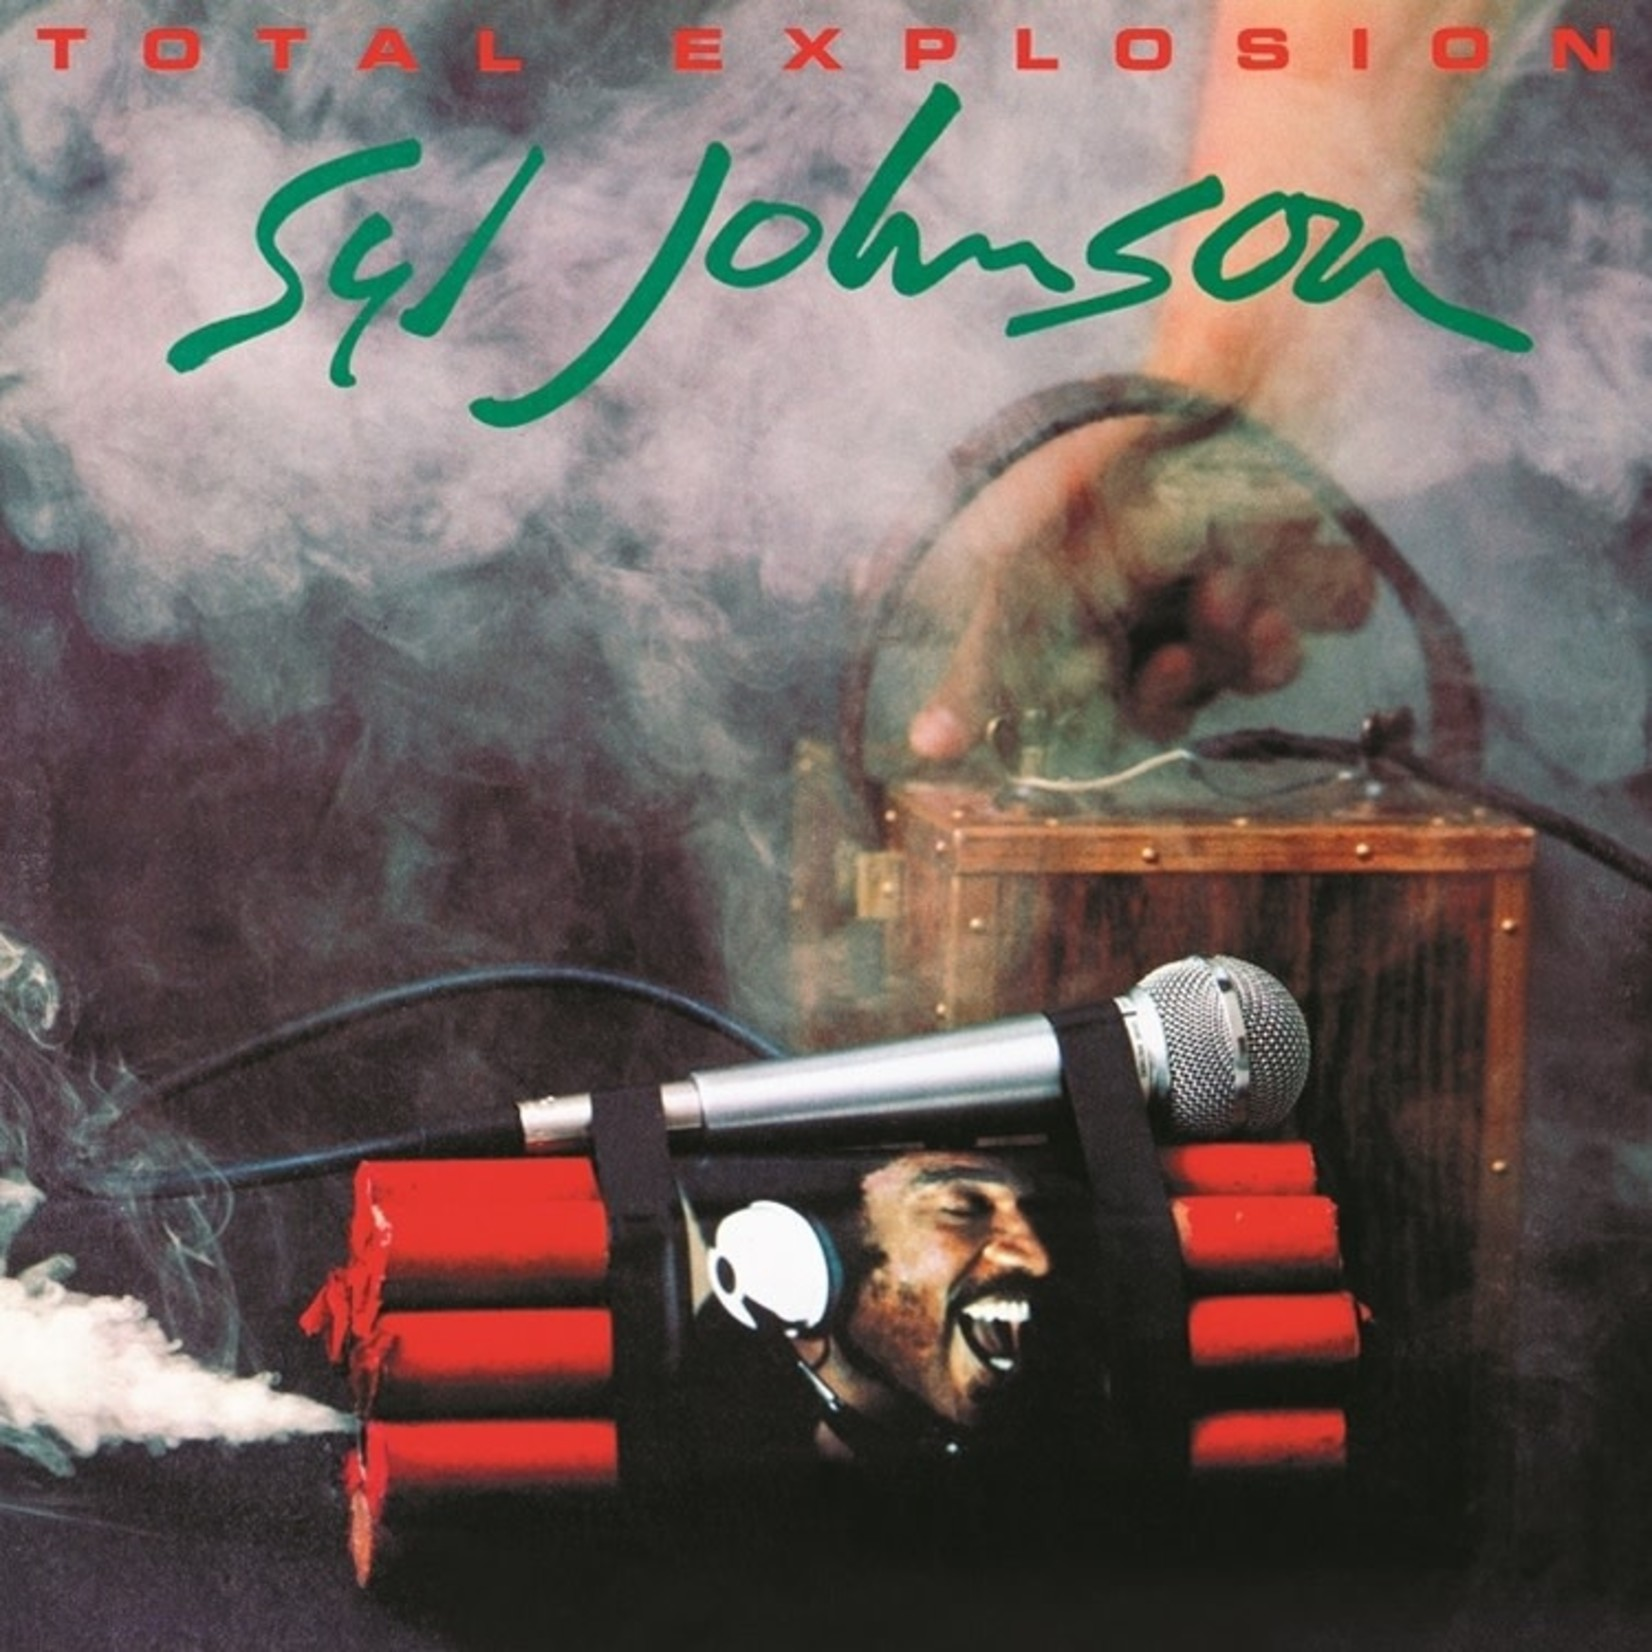 [New] Johnson, Syl: Total Explosion